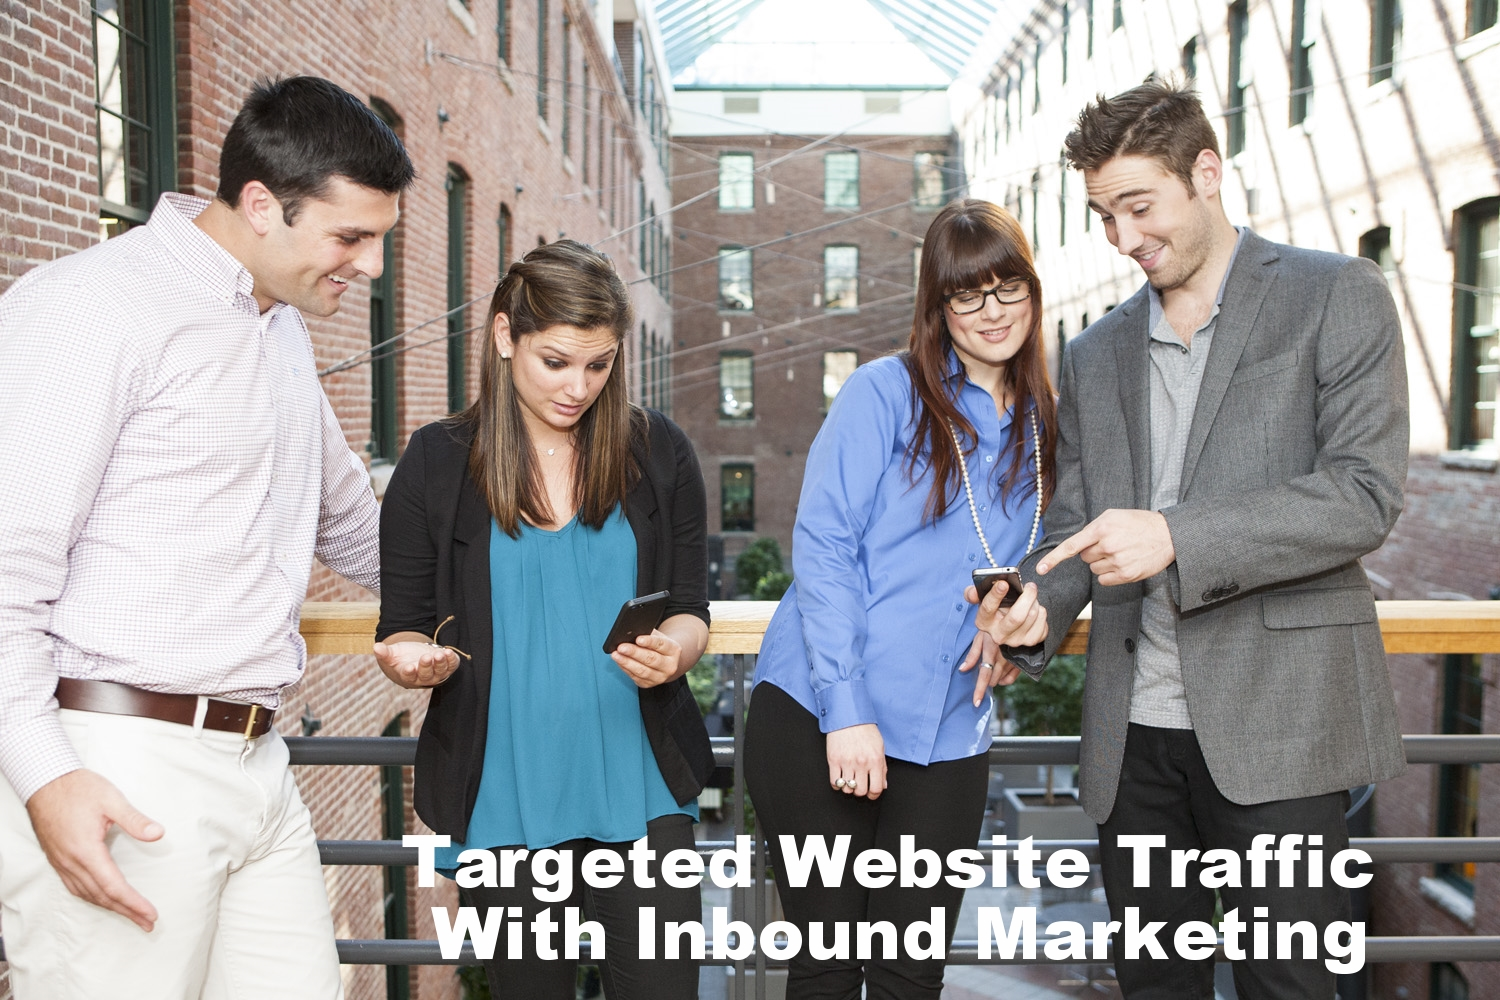 10 Ways Inbound Marketing Helps You Increase Targeted Website Traffic